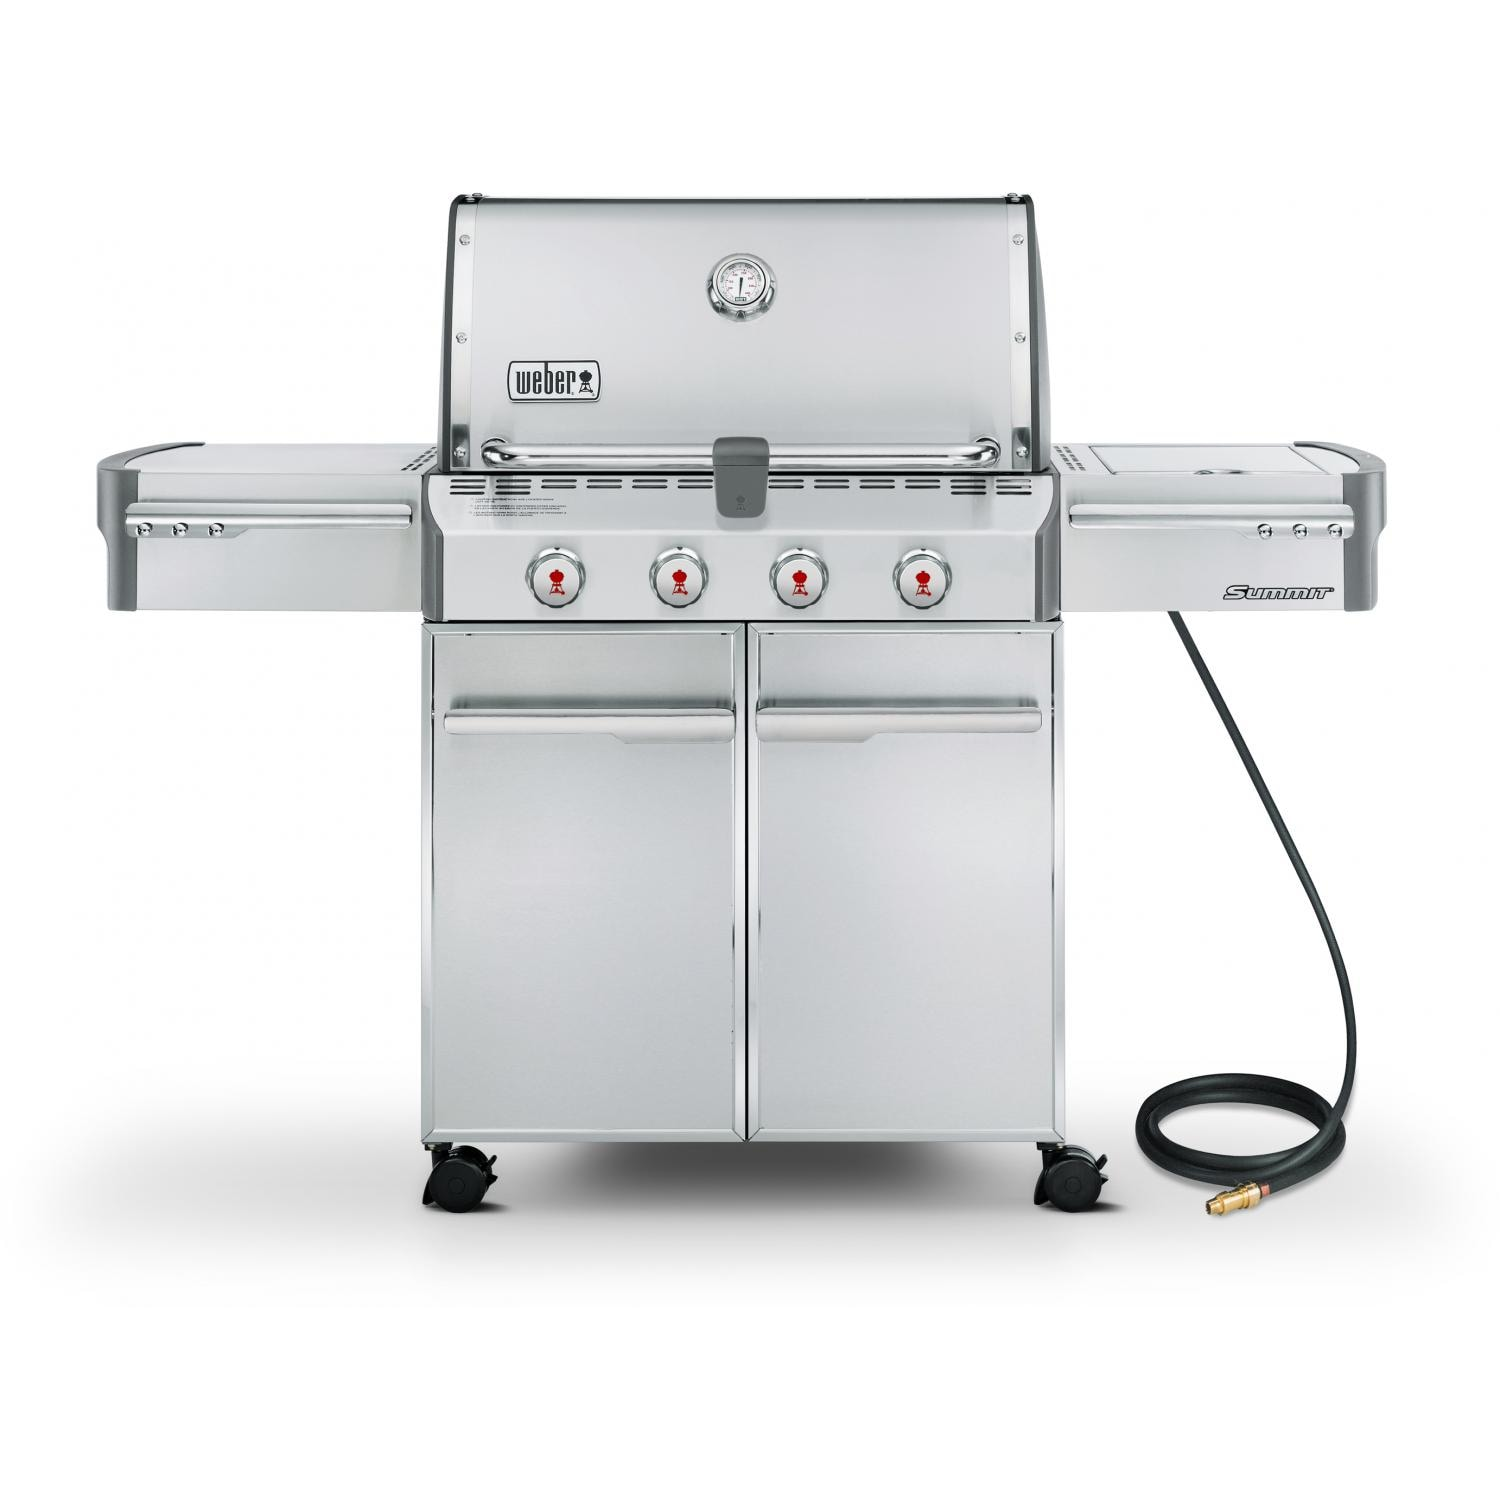 weber summit s 420 natural gas bbq grill on cart with side burner bbq guys. Black Bedroom Furniture Sets. Home Design Ideas